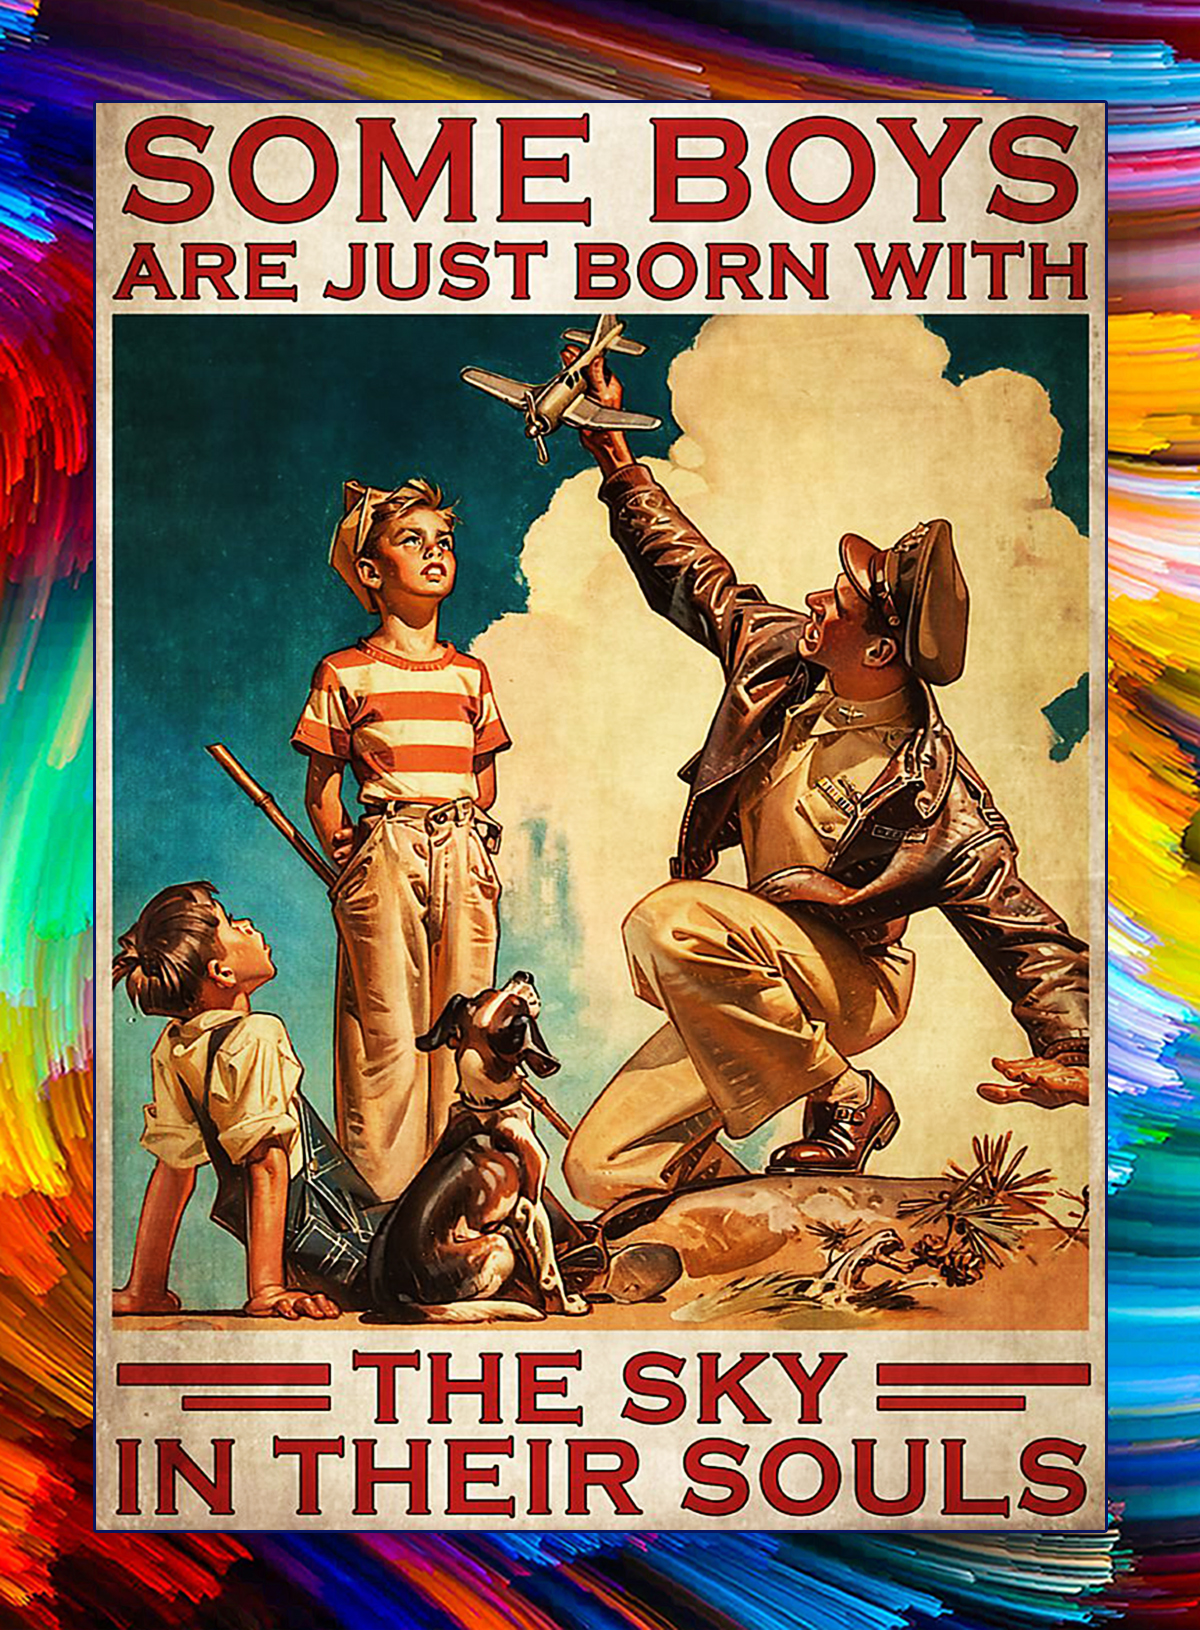 Some boys are just born with the sky in their souls poster - A4